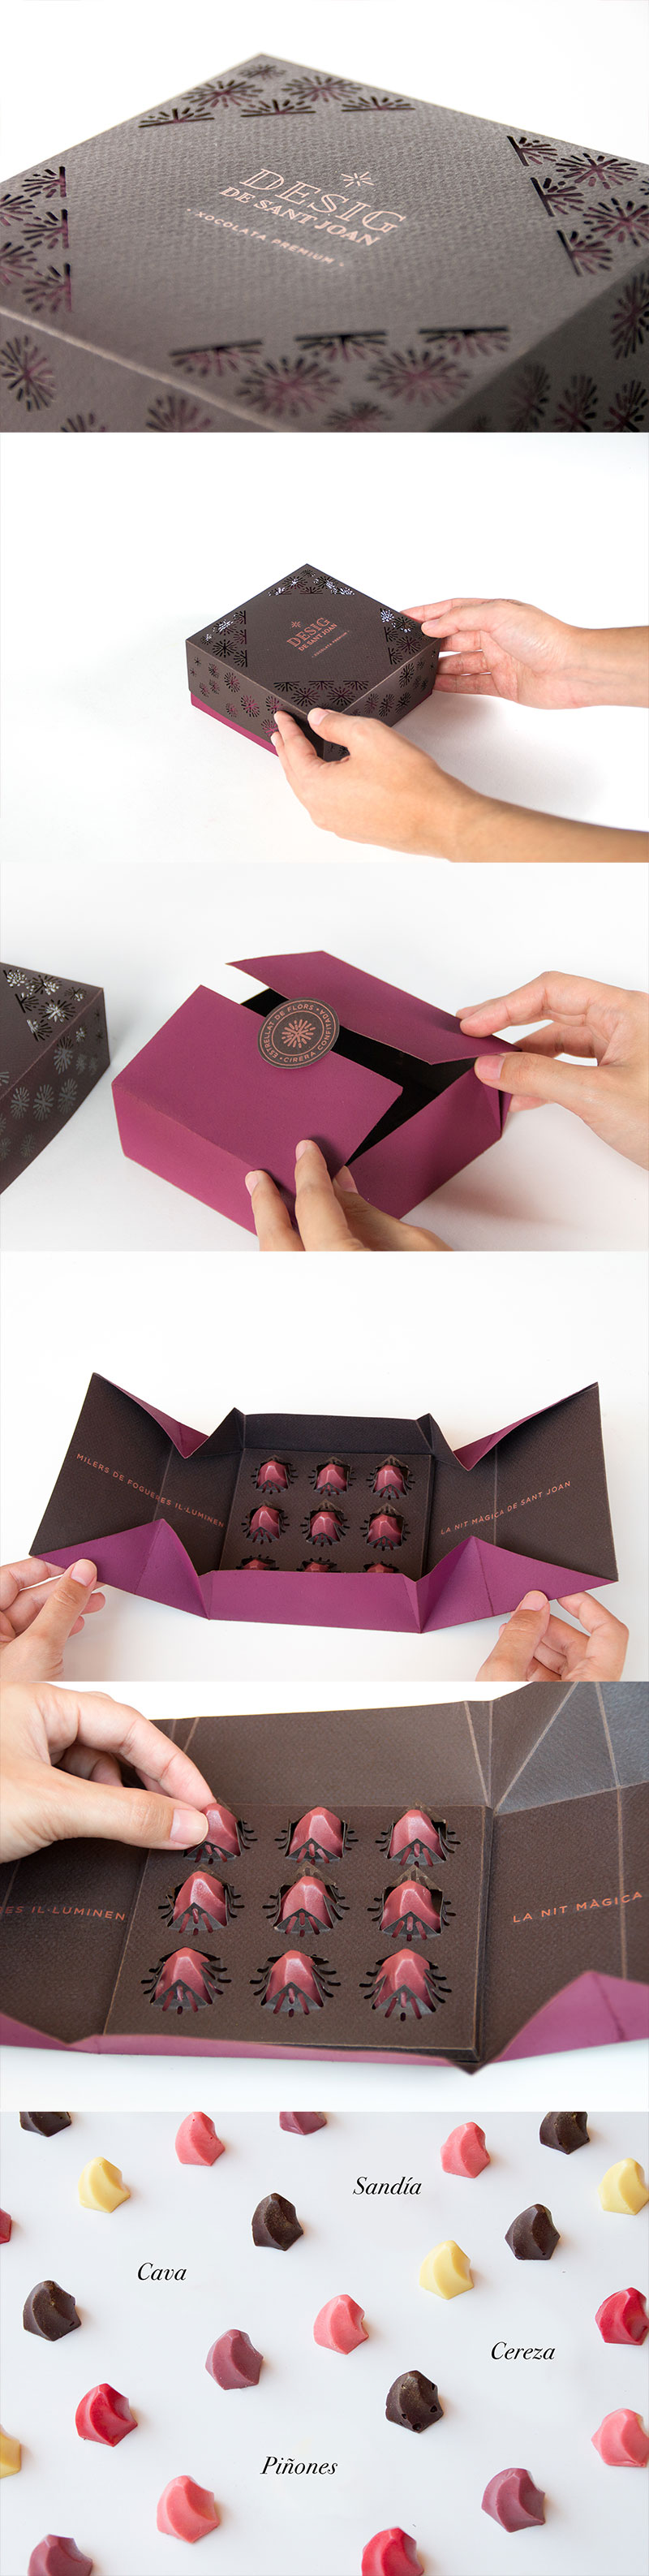 Desig de Sant Joan Chocolate Branding and Packaging